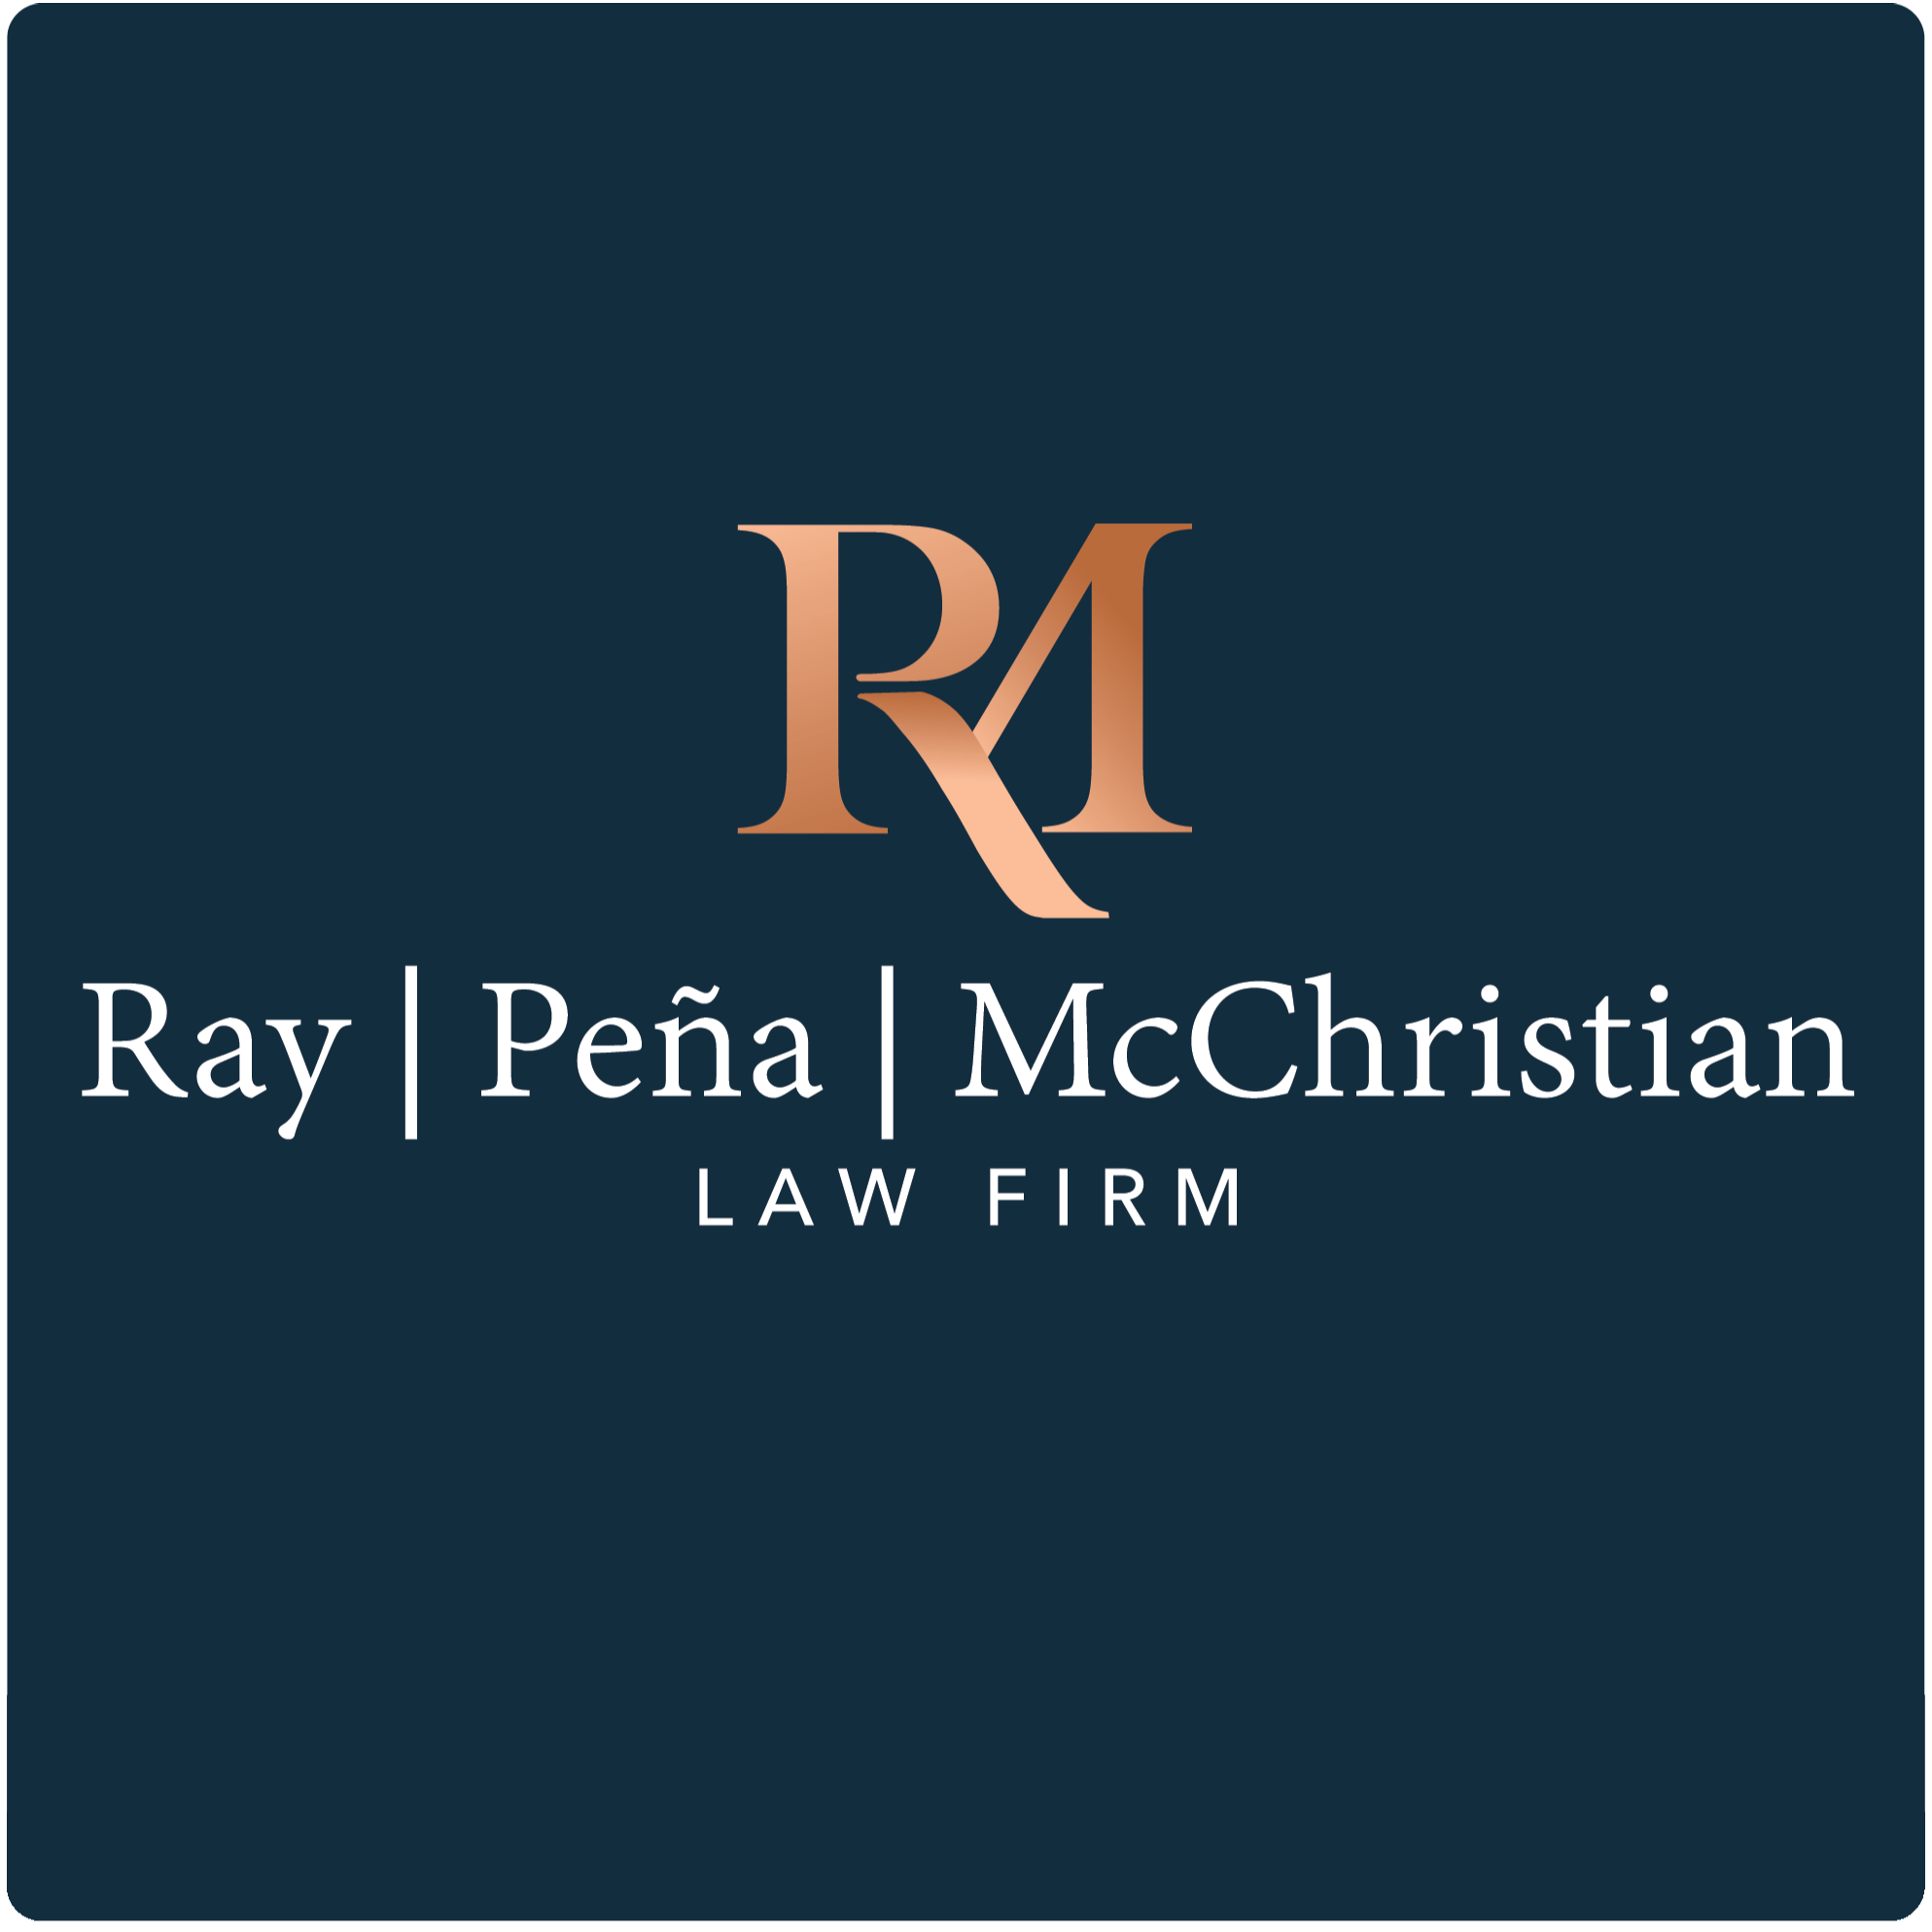 Ray Pen~a McChristian, P. C. Attorneys at Law